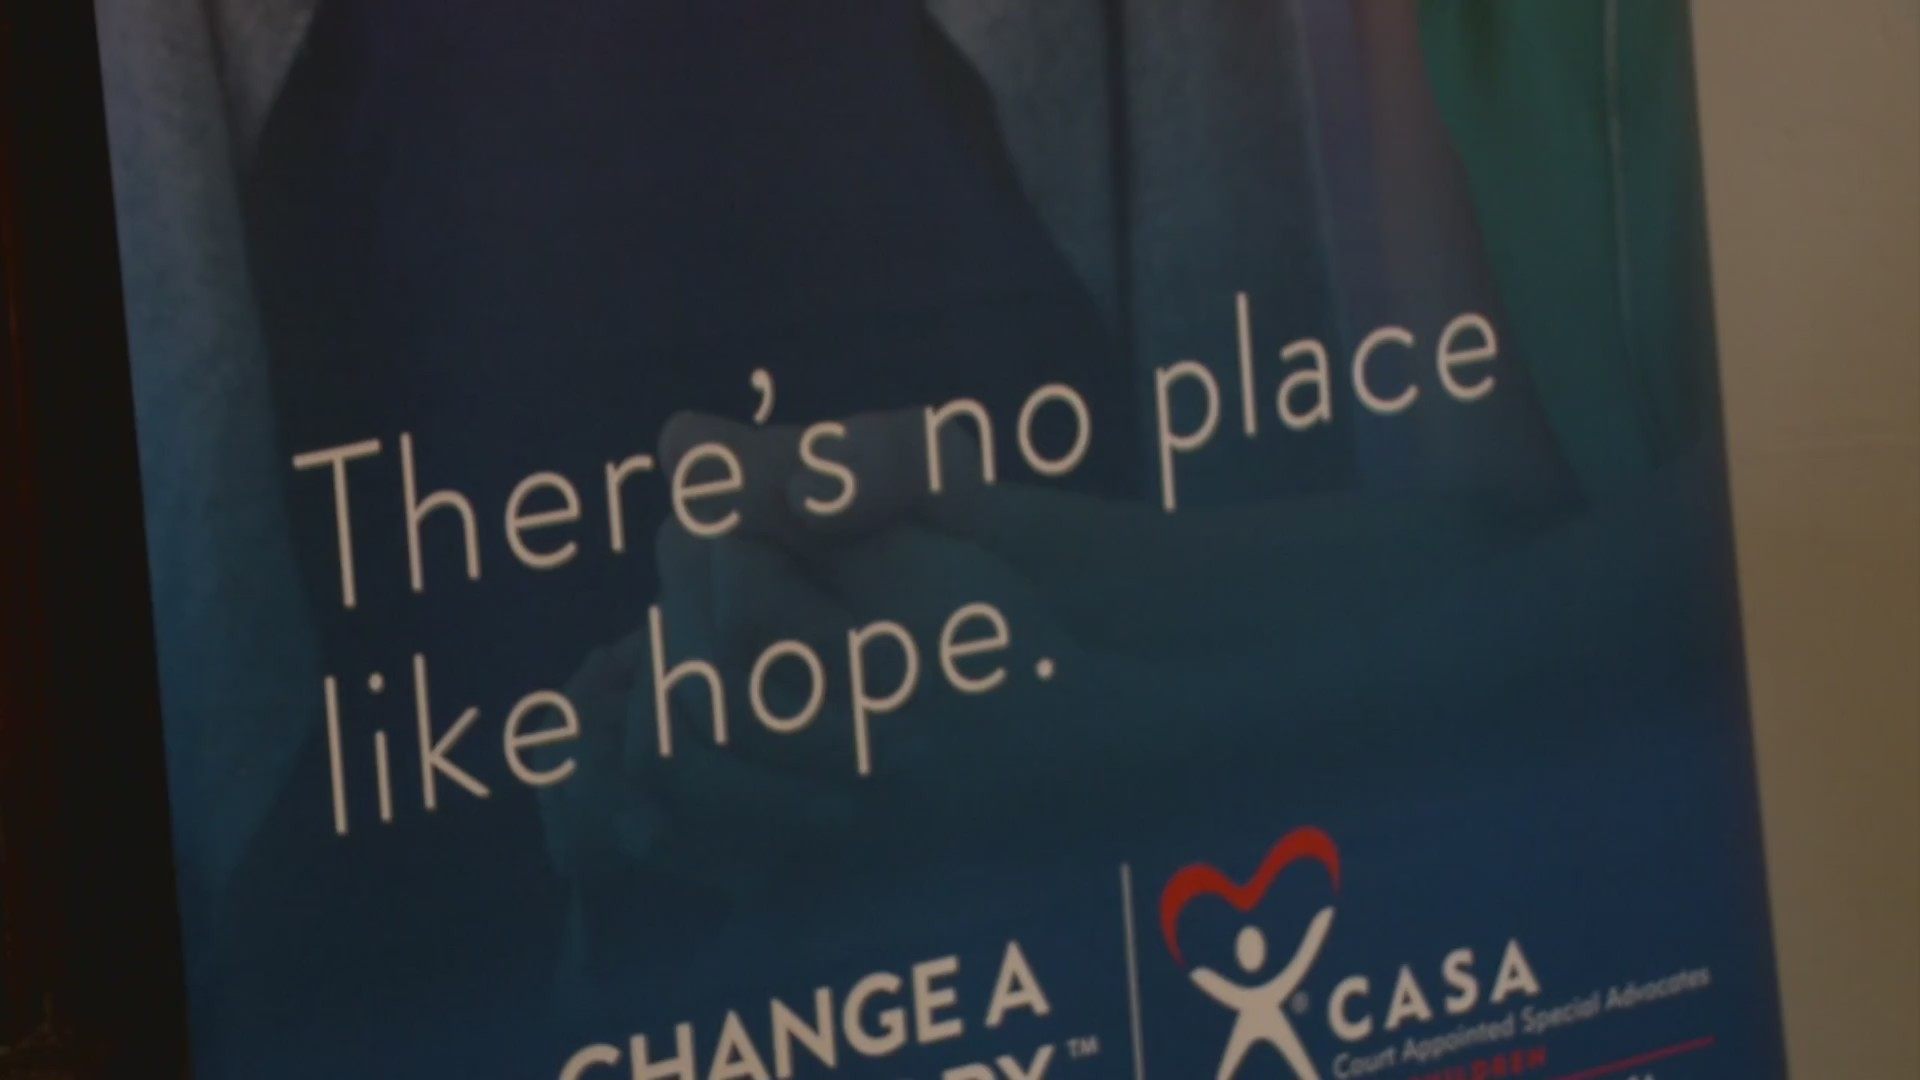 Picture of CASA sign